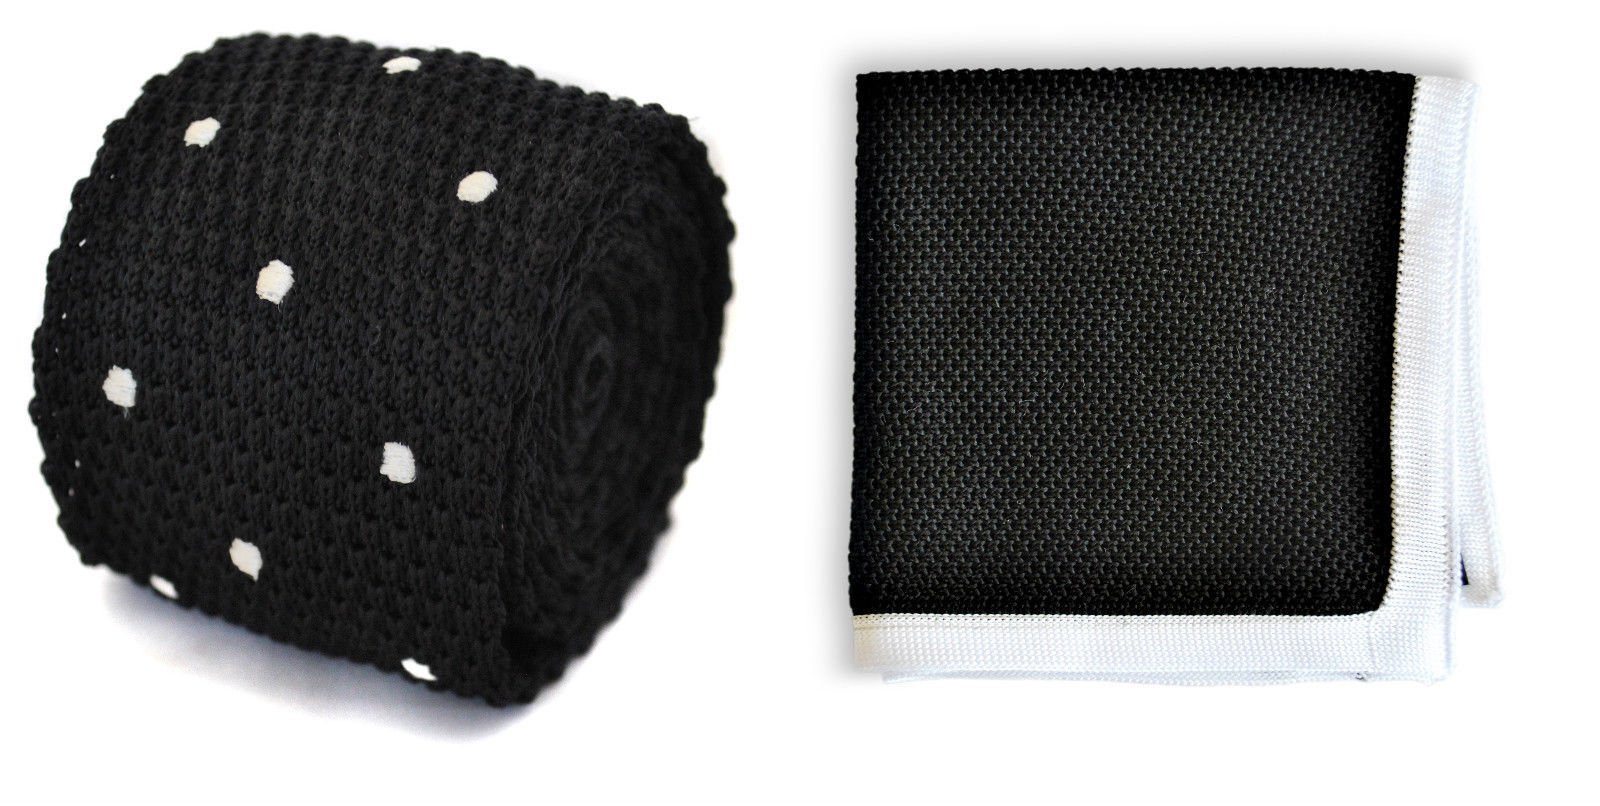 Matching knitted tie and pocket square in black by Frederick Thomas